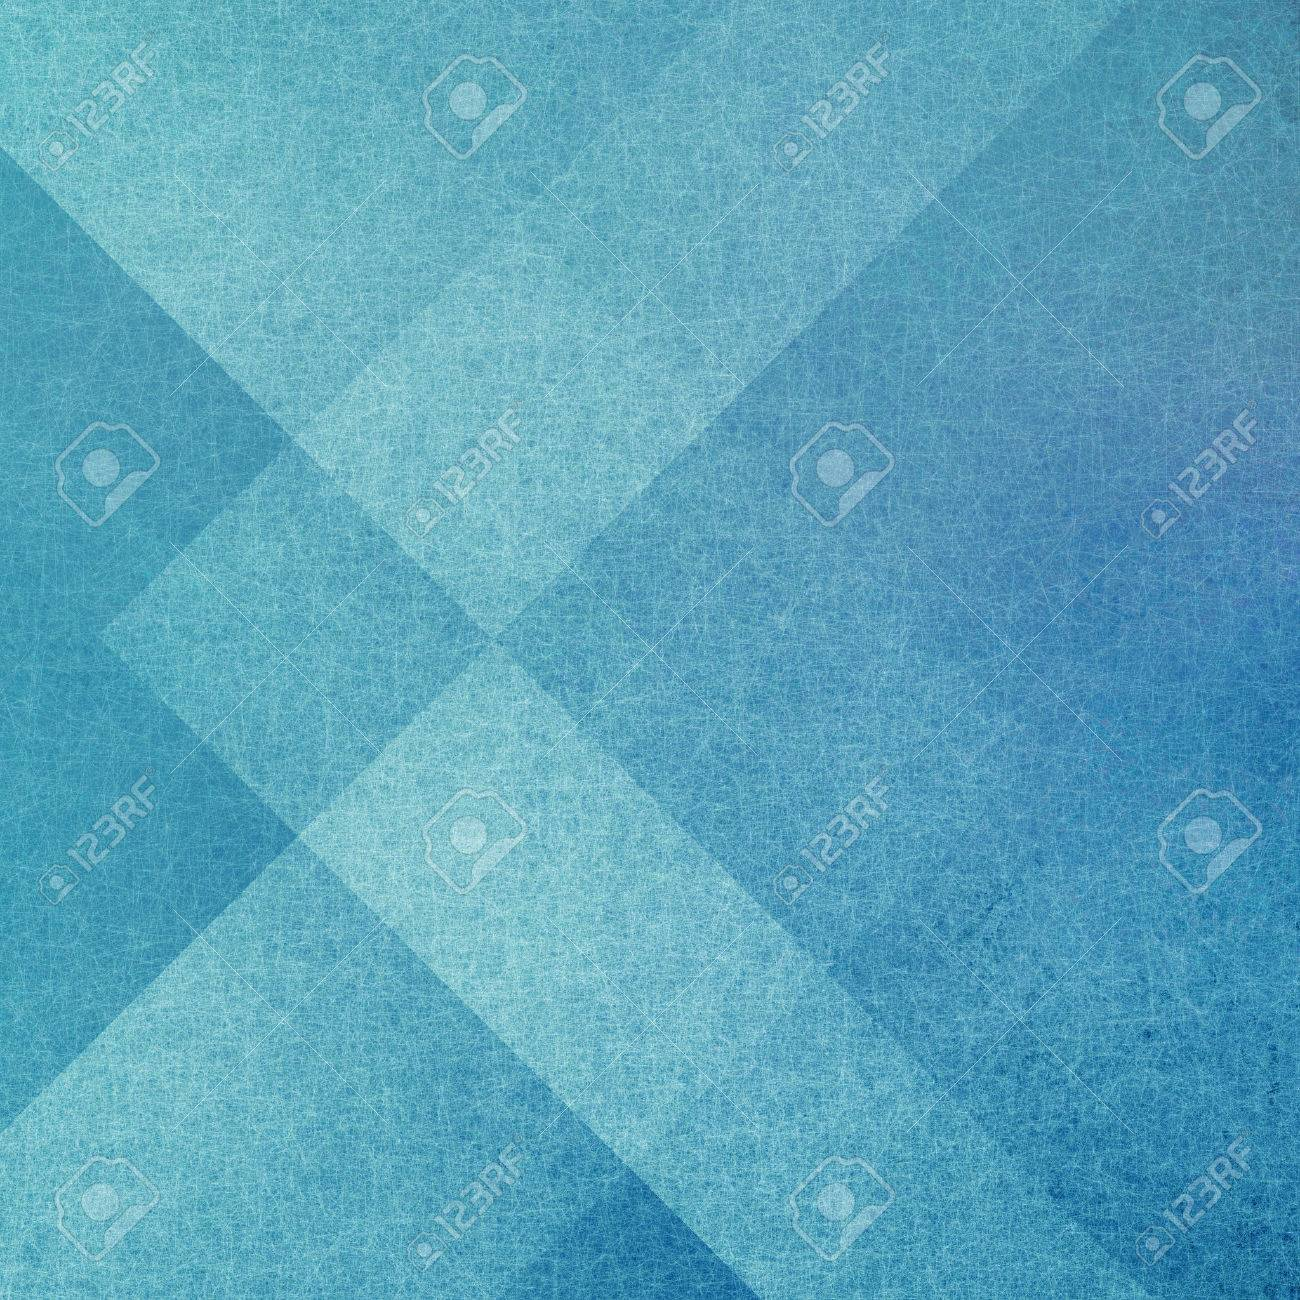 abstract sky blue background, triangles and angled shapes layered line design element, faded texture design, geometric background, angled shapes background - 44229377